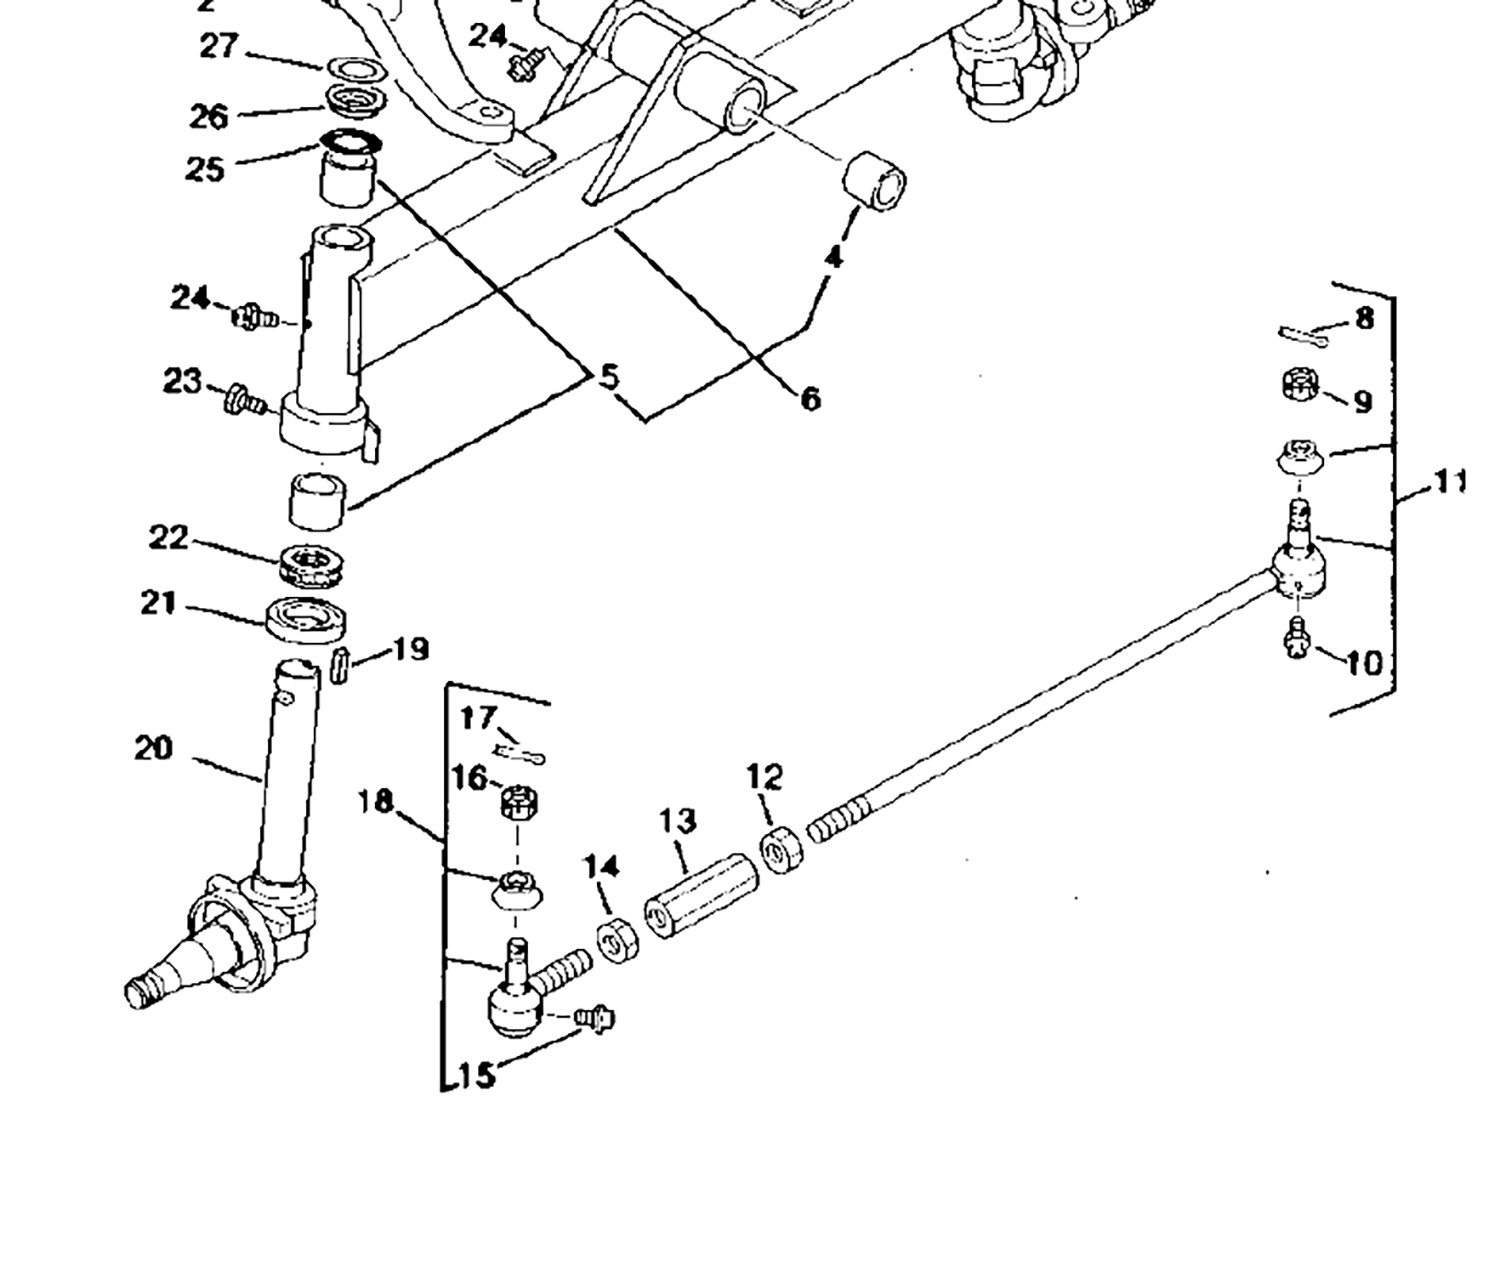 4310 John Deere Steering Parts Diagram John Deere 2210